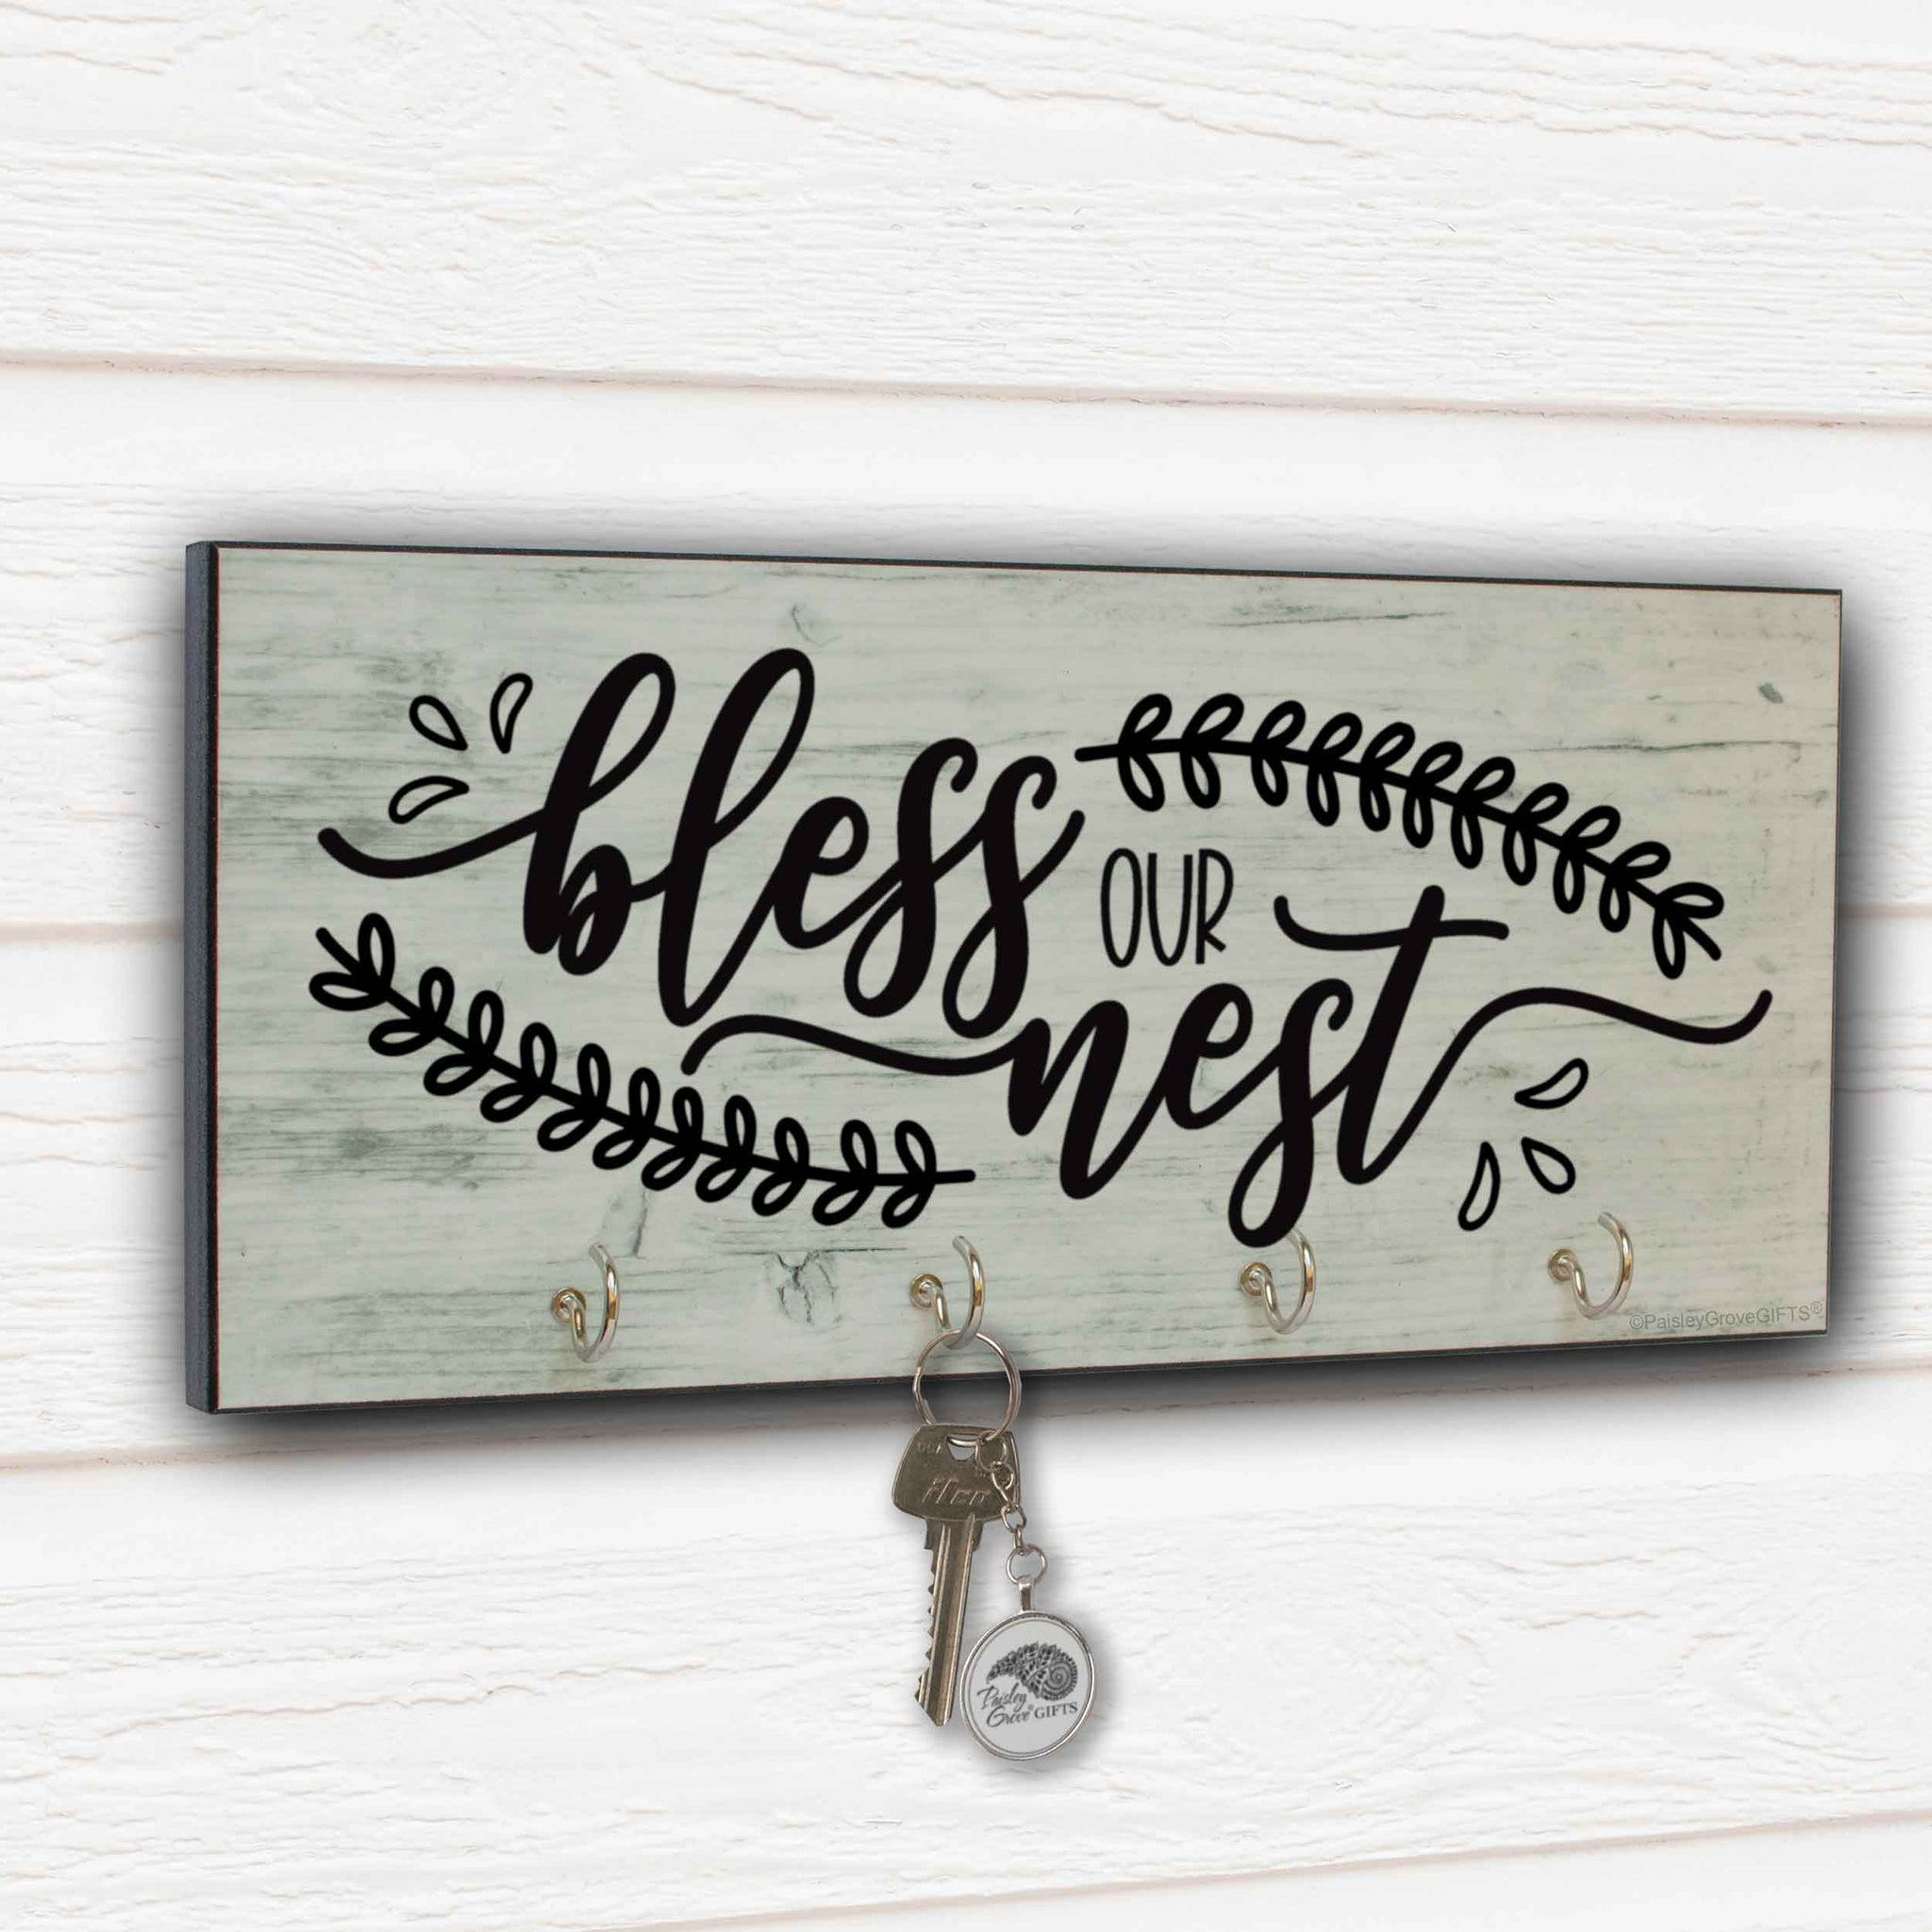 CopyrightPaisleyGroveGIFTS S310a1 Bless our Nest Mudroom Decor entryway key hanger on shiplap wall